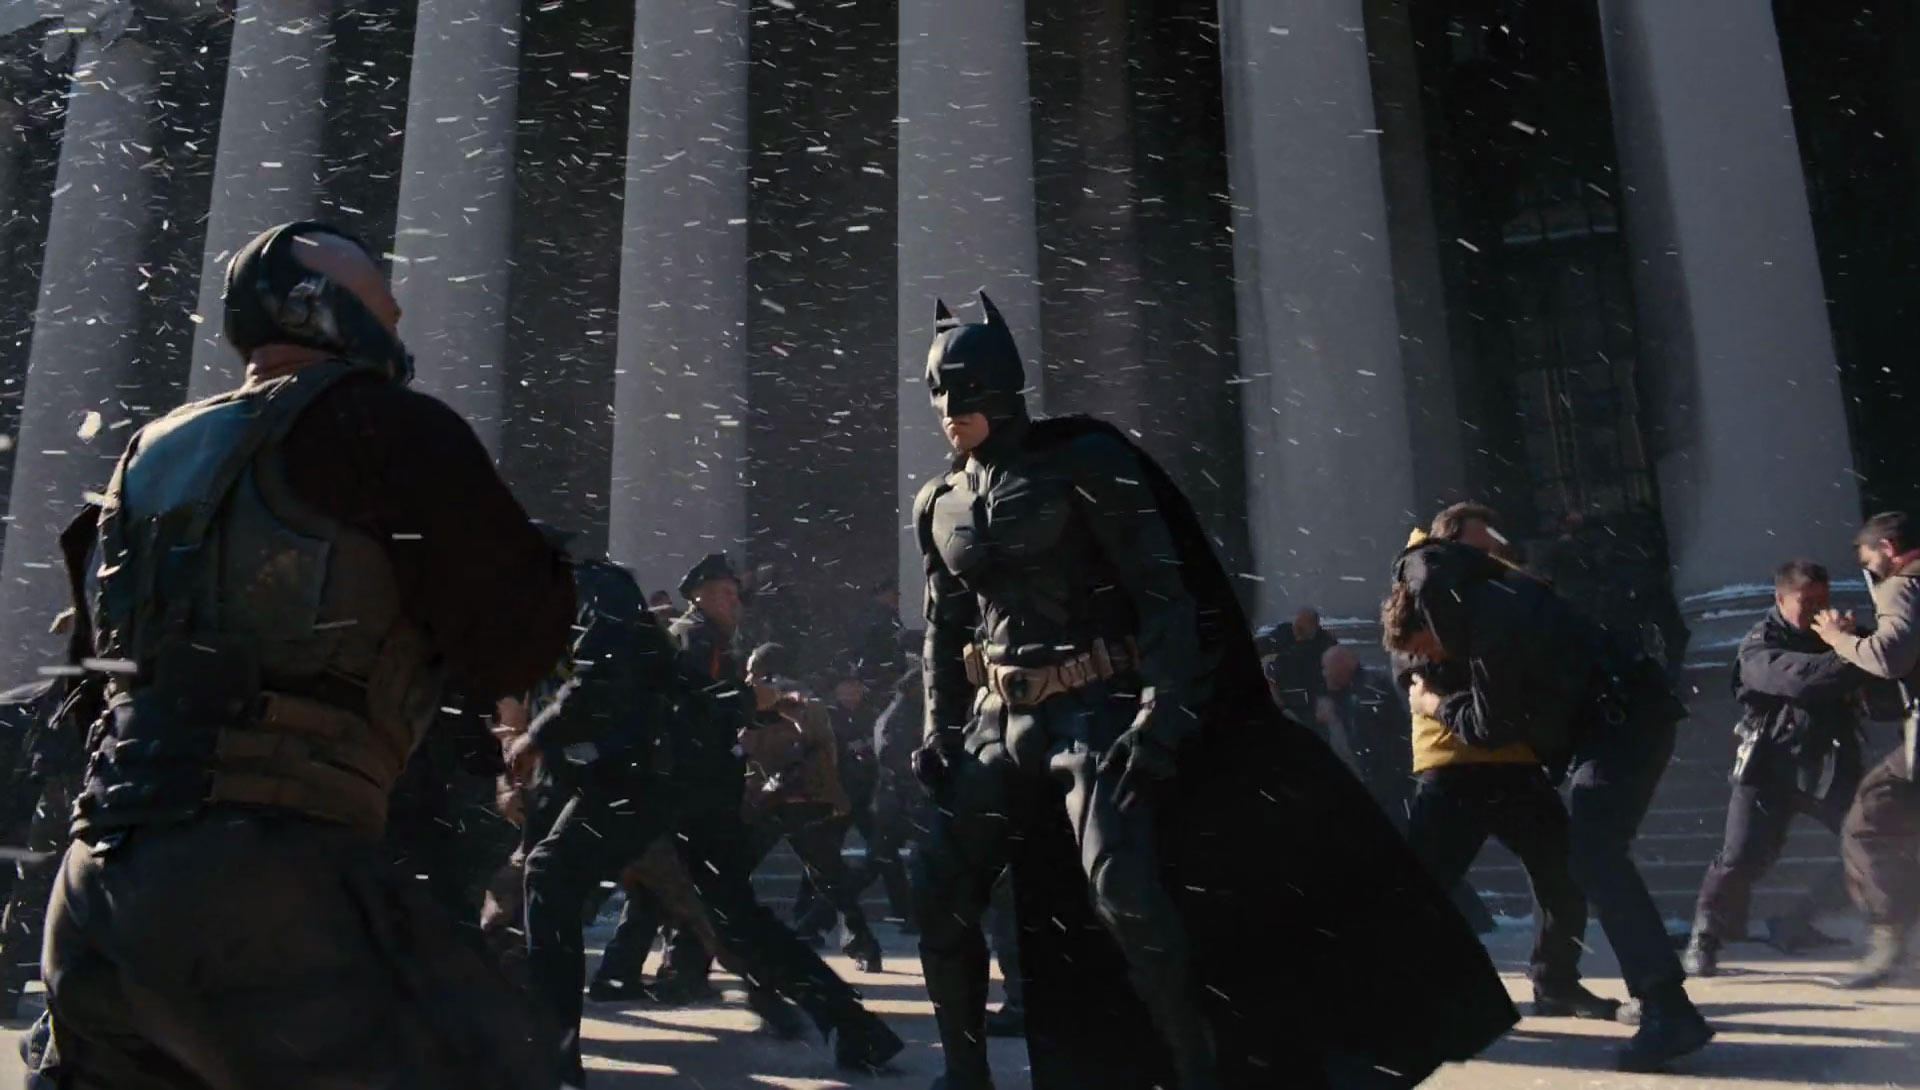 the_dark_knight_rises_final_battle